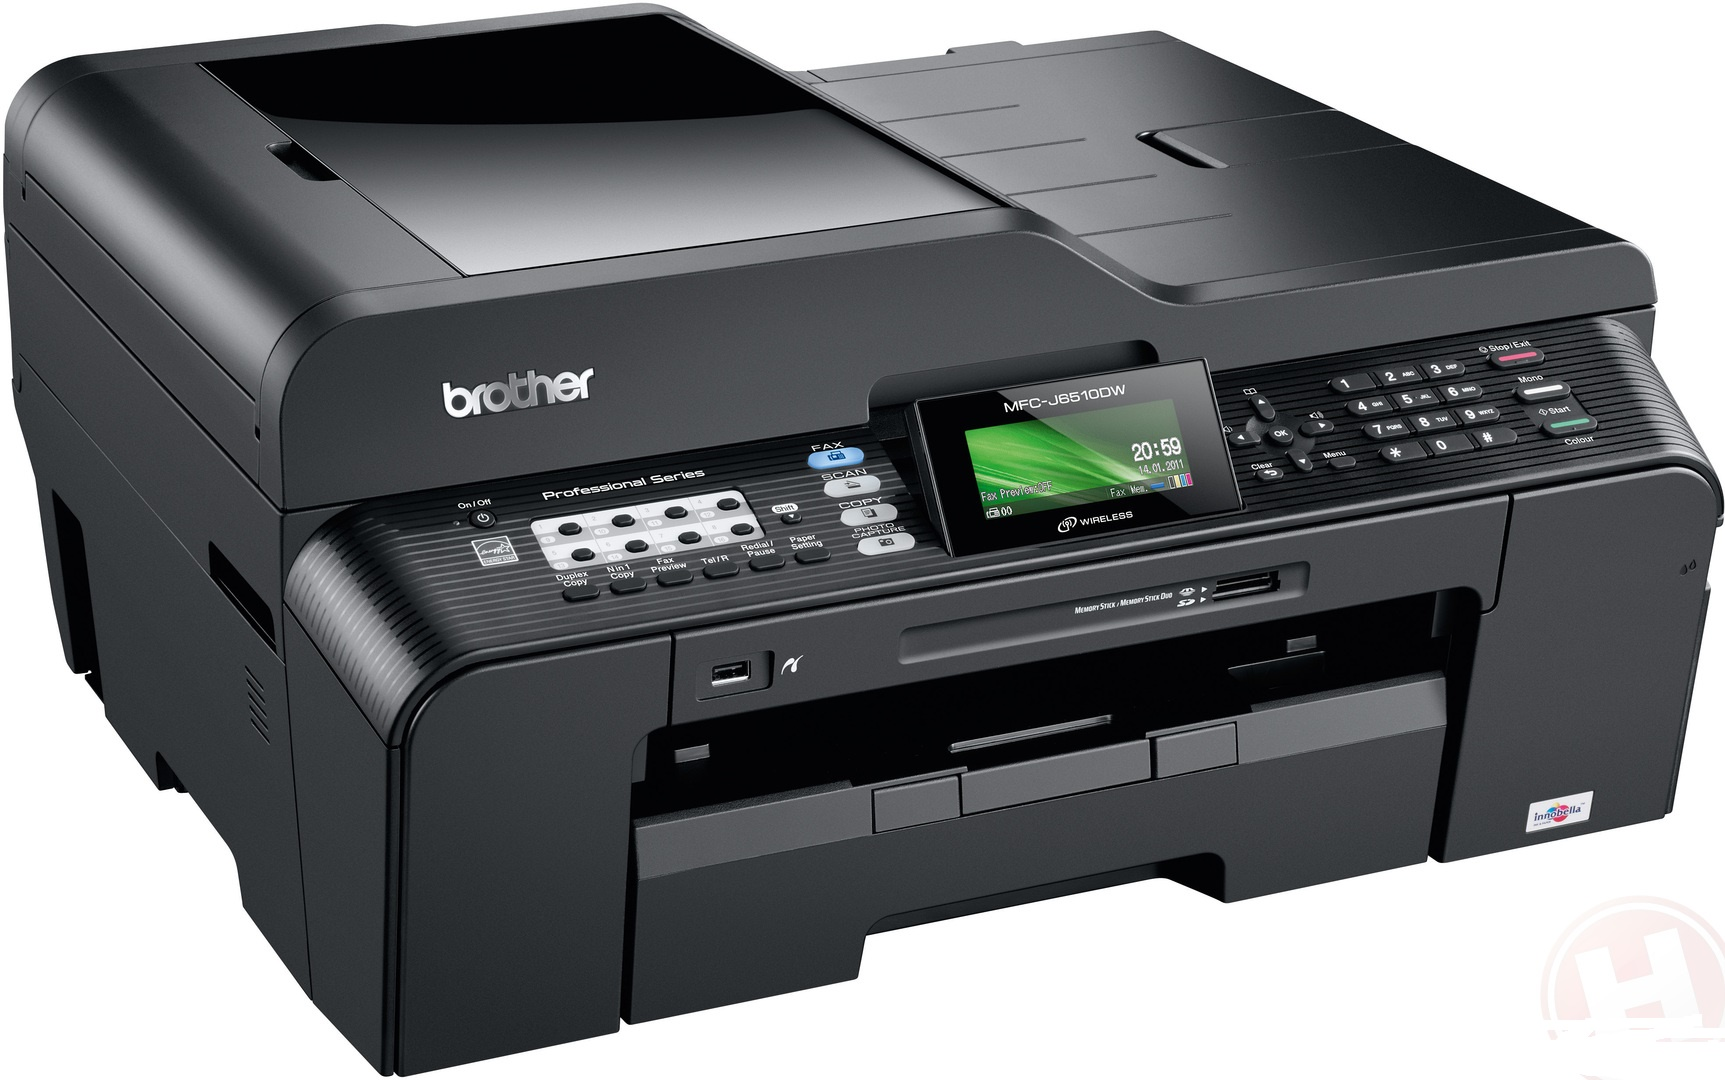 Brother MFC-J6510DW Color Inkjet MFP, Fully Refurbished (MFC-J6510DW)